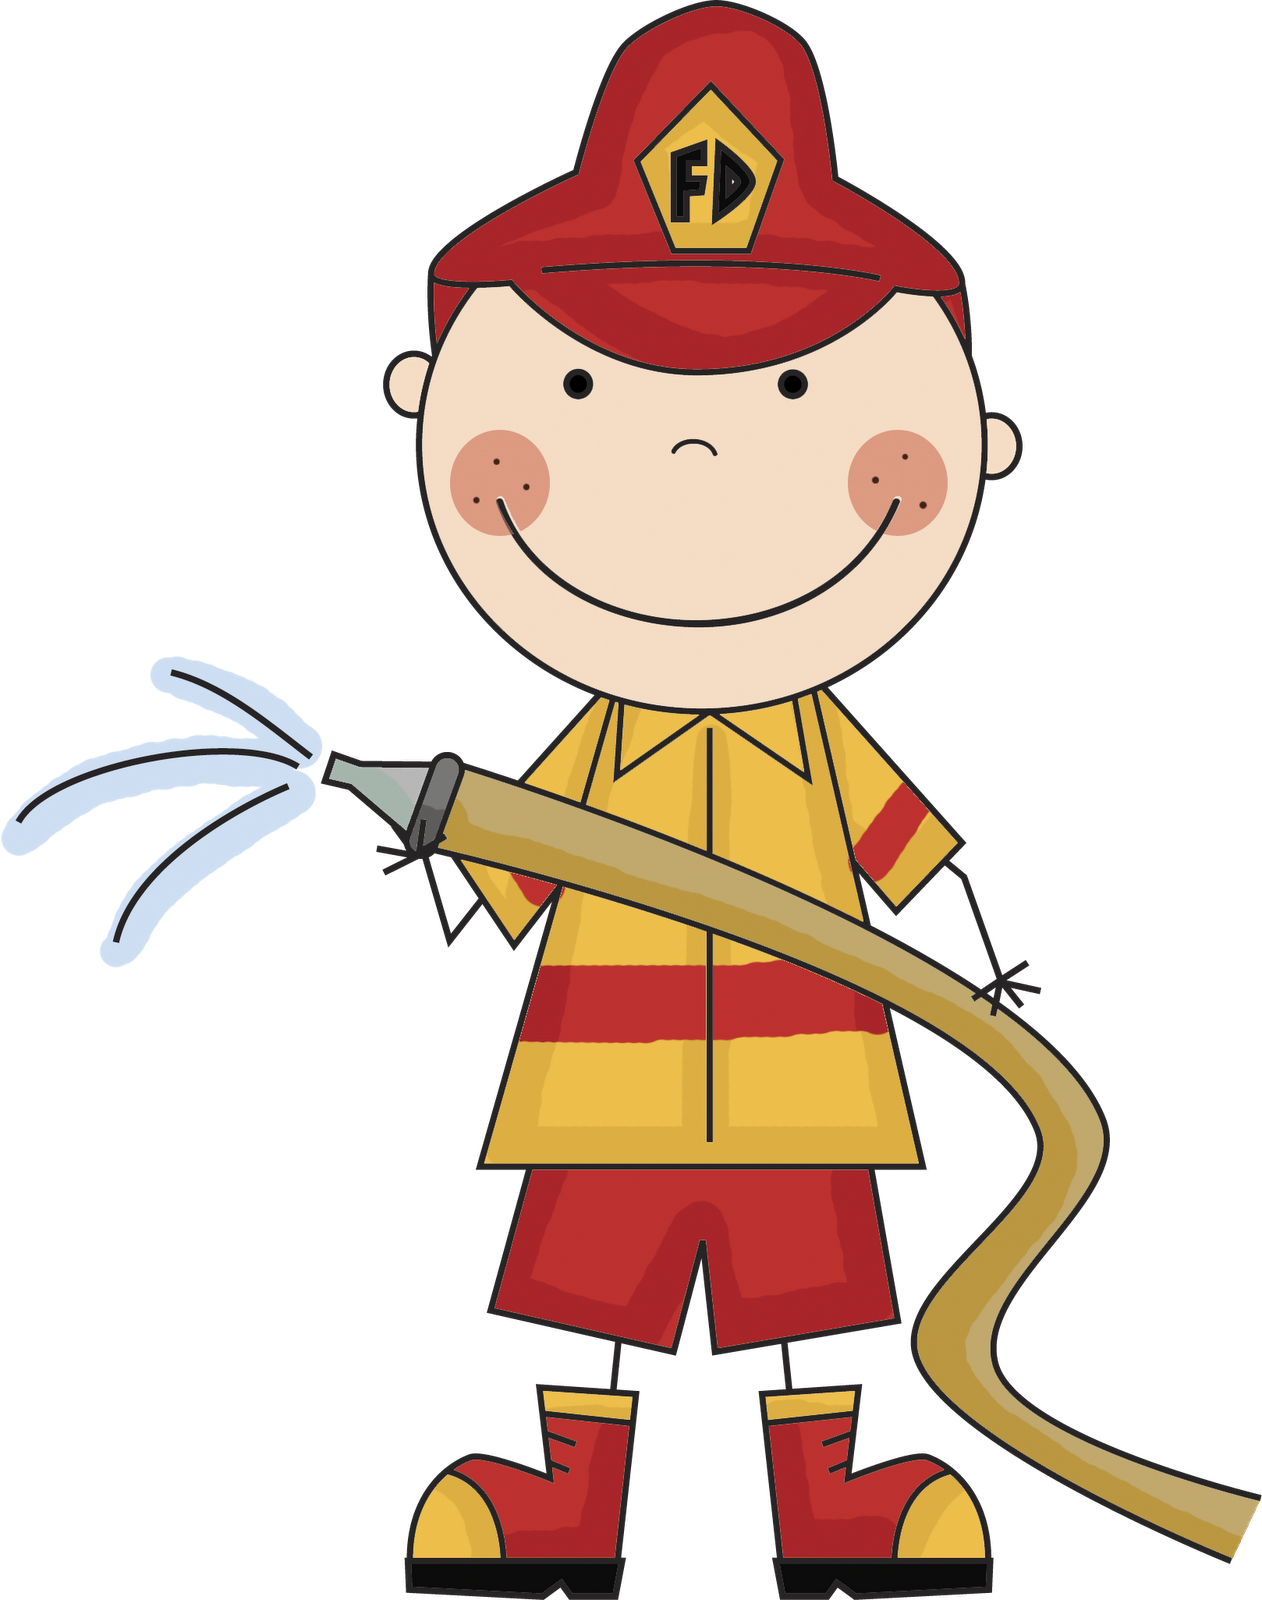 fire safety clipart